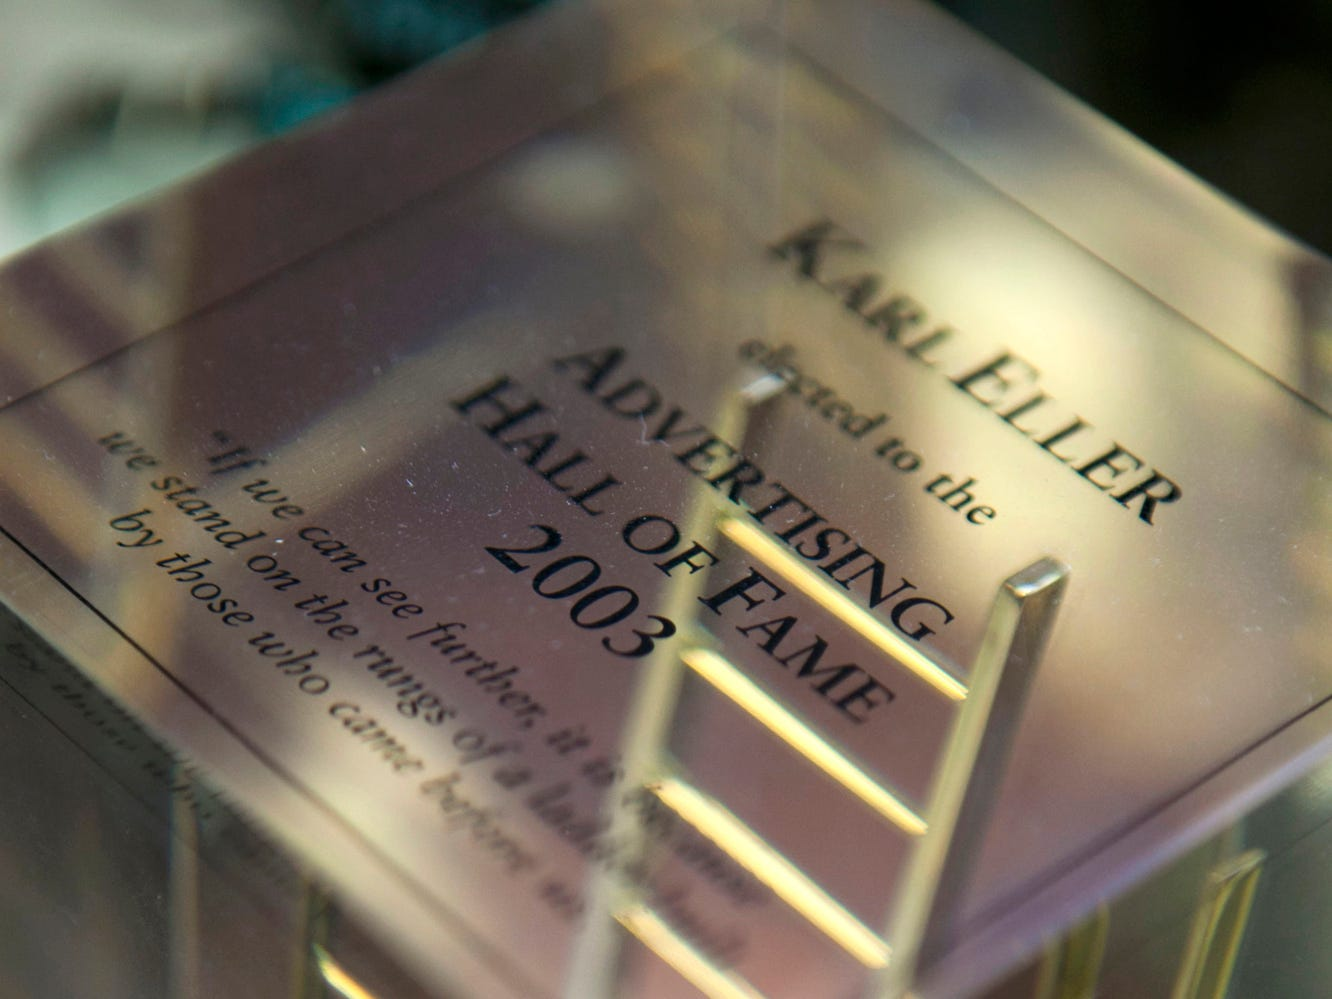 An award commemorates Eller's election to the Advertising Hall of Fame in 2003.